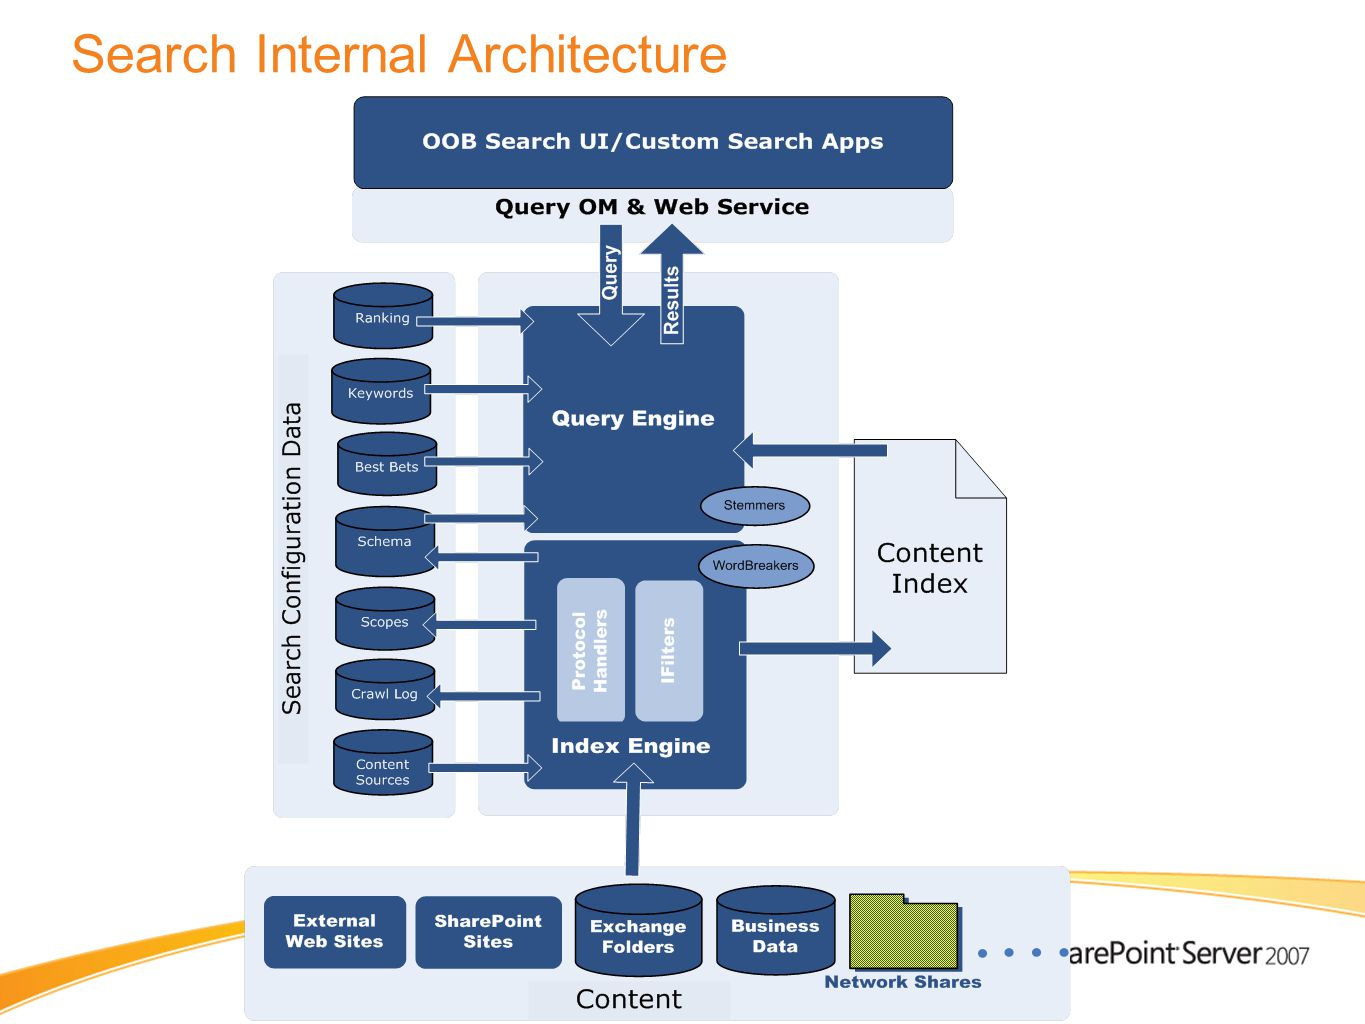 Search Internal Architecture